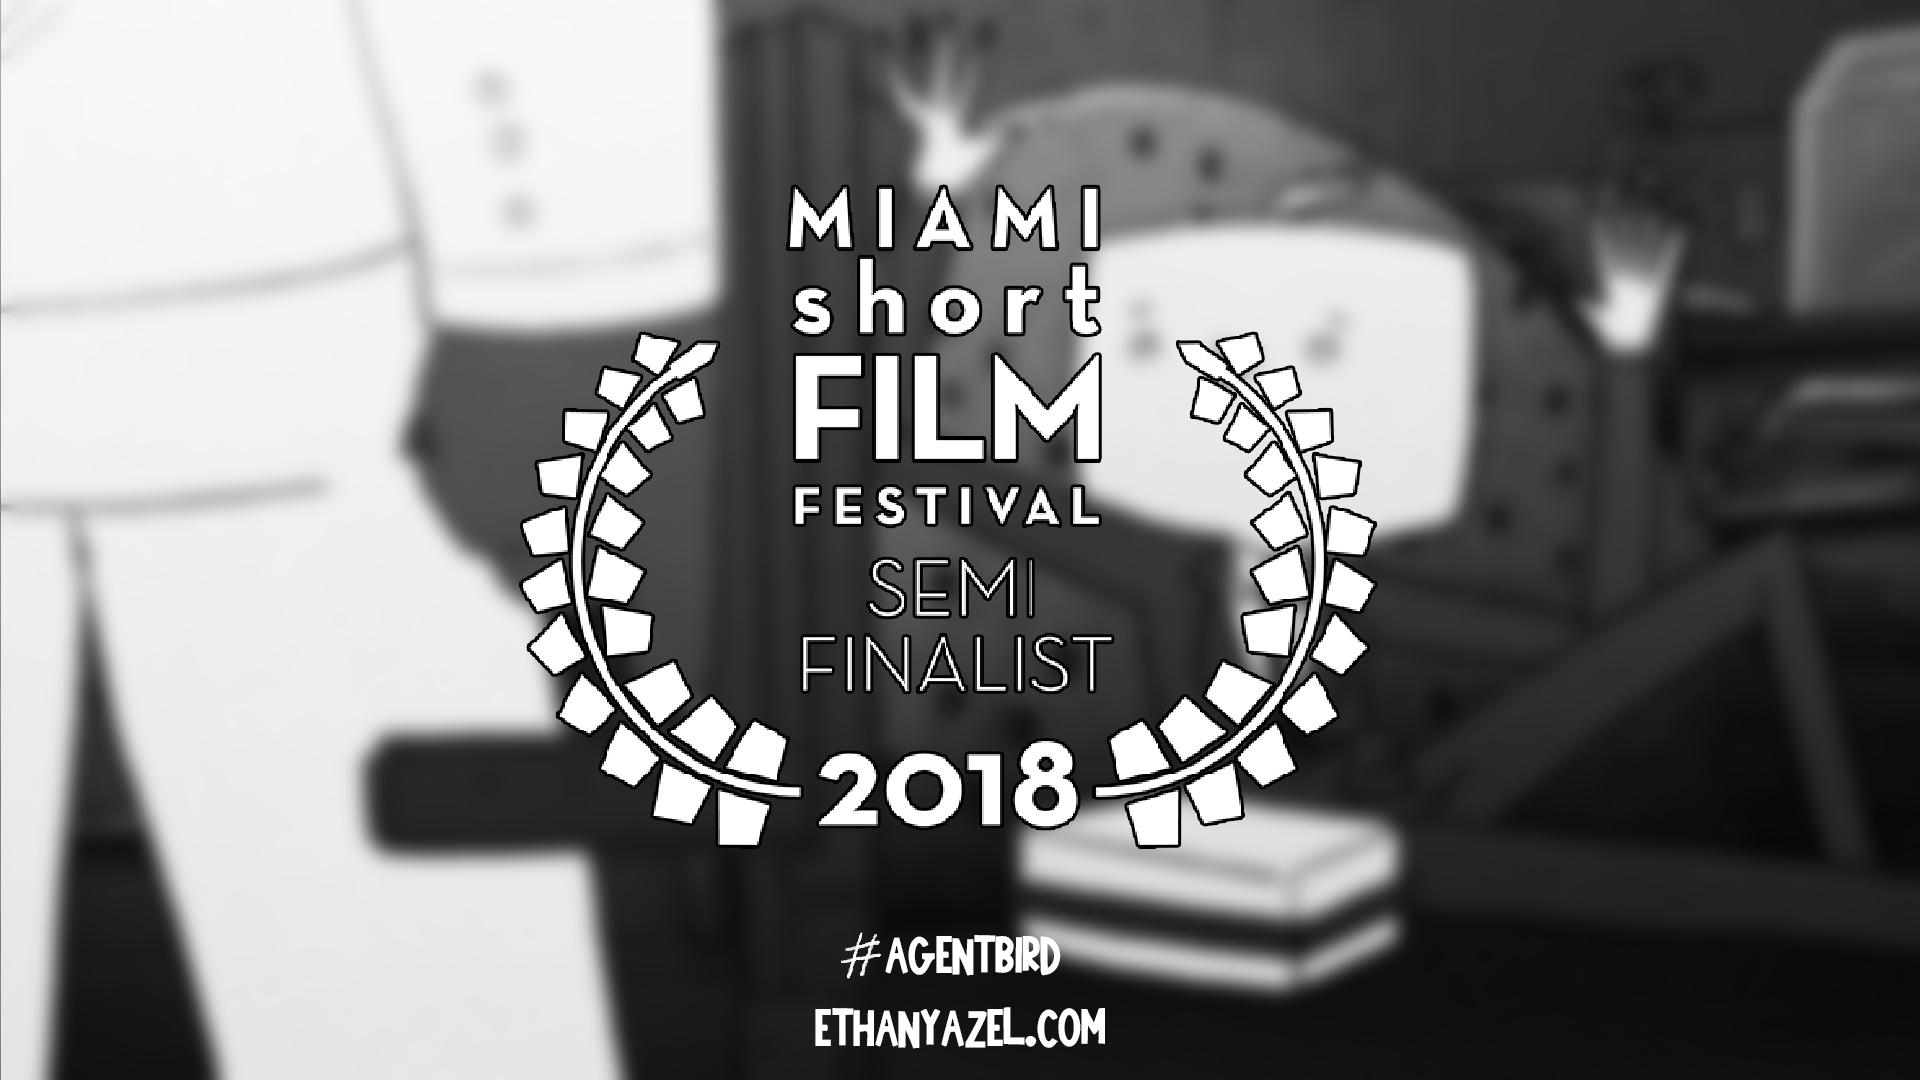 Oh, one last thing! Last week we were announced as a semi finalist for the Miami Short Film Festival in Florida!